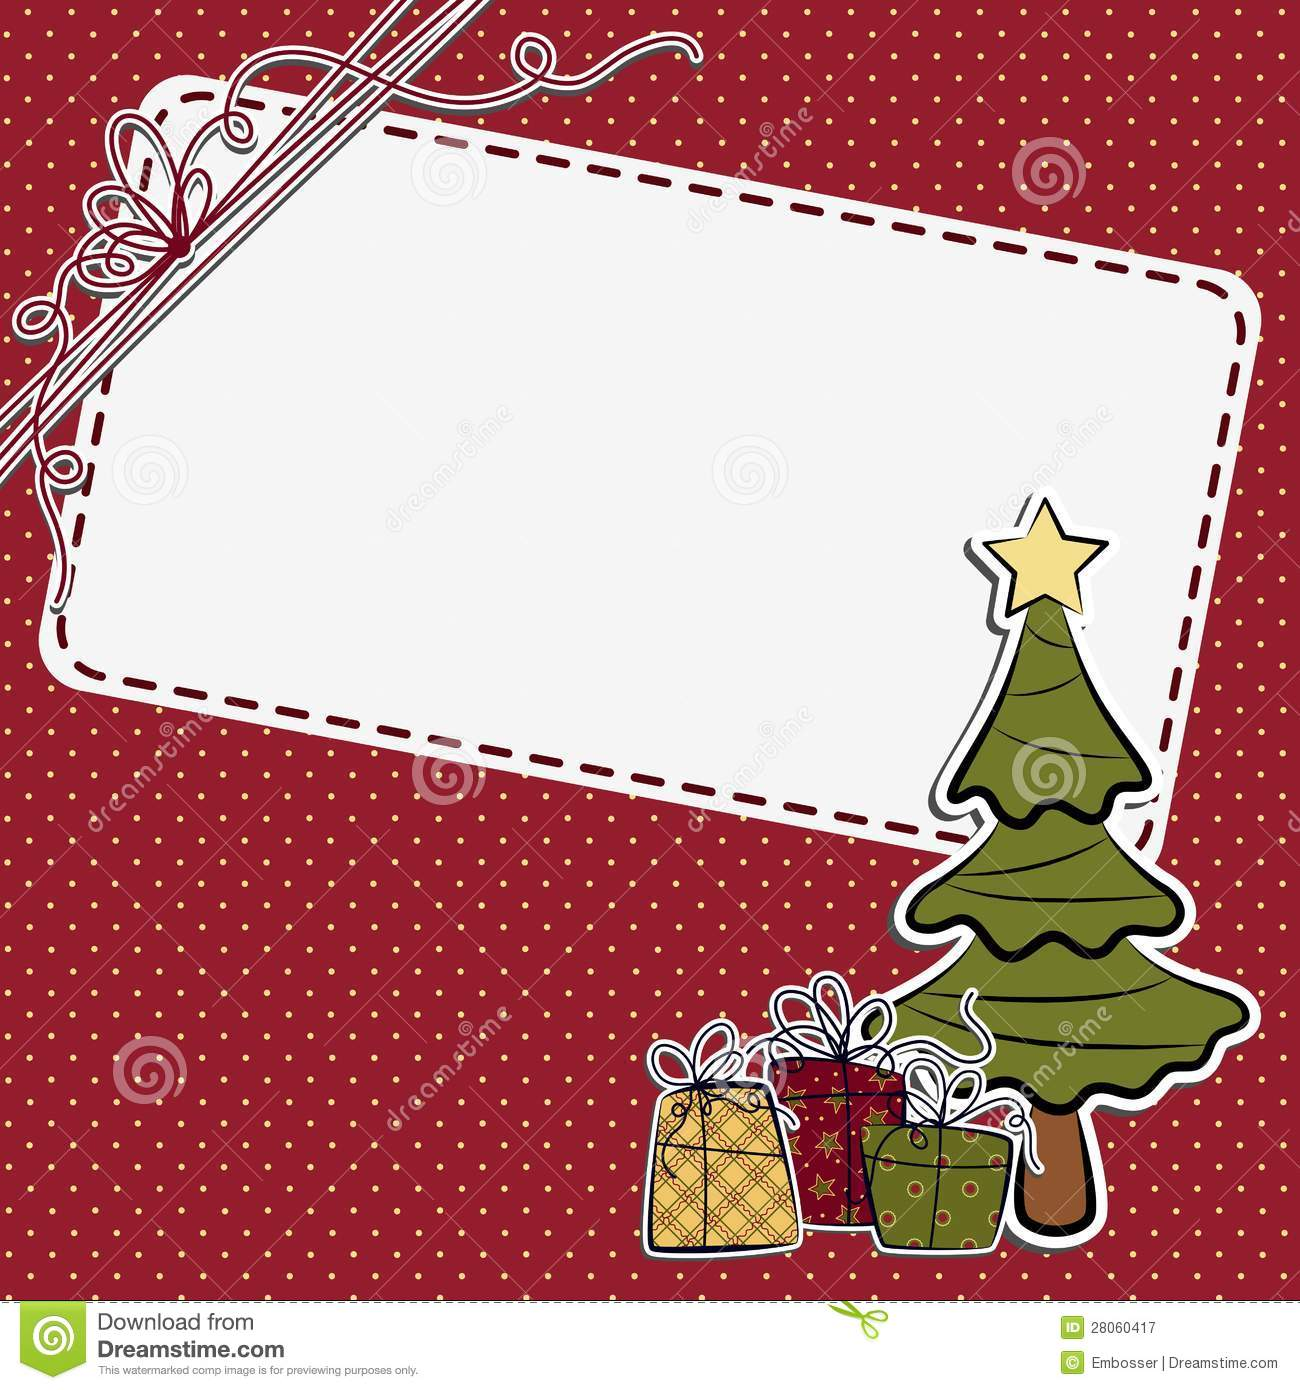 Cute Christmas Postcard Template Stock Vector Illustration Of - Photography postcard template